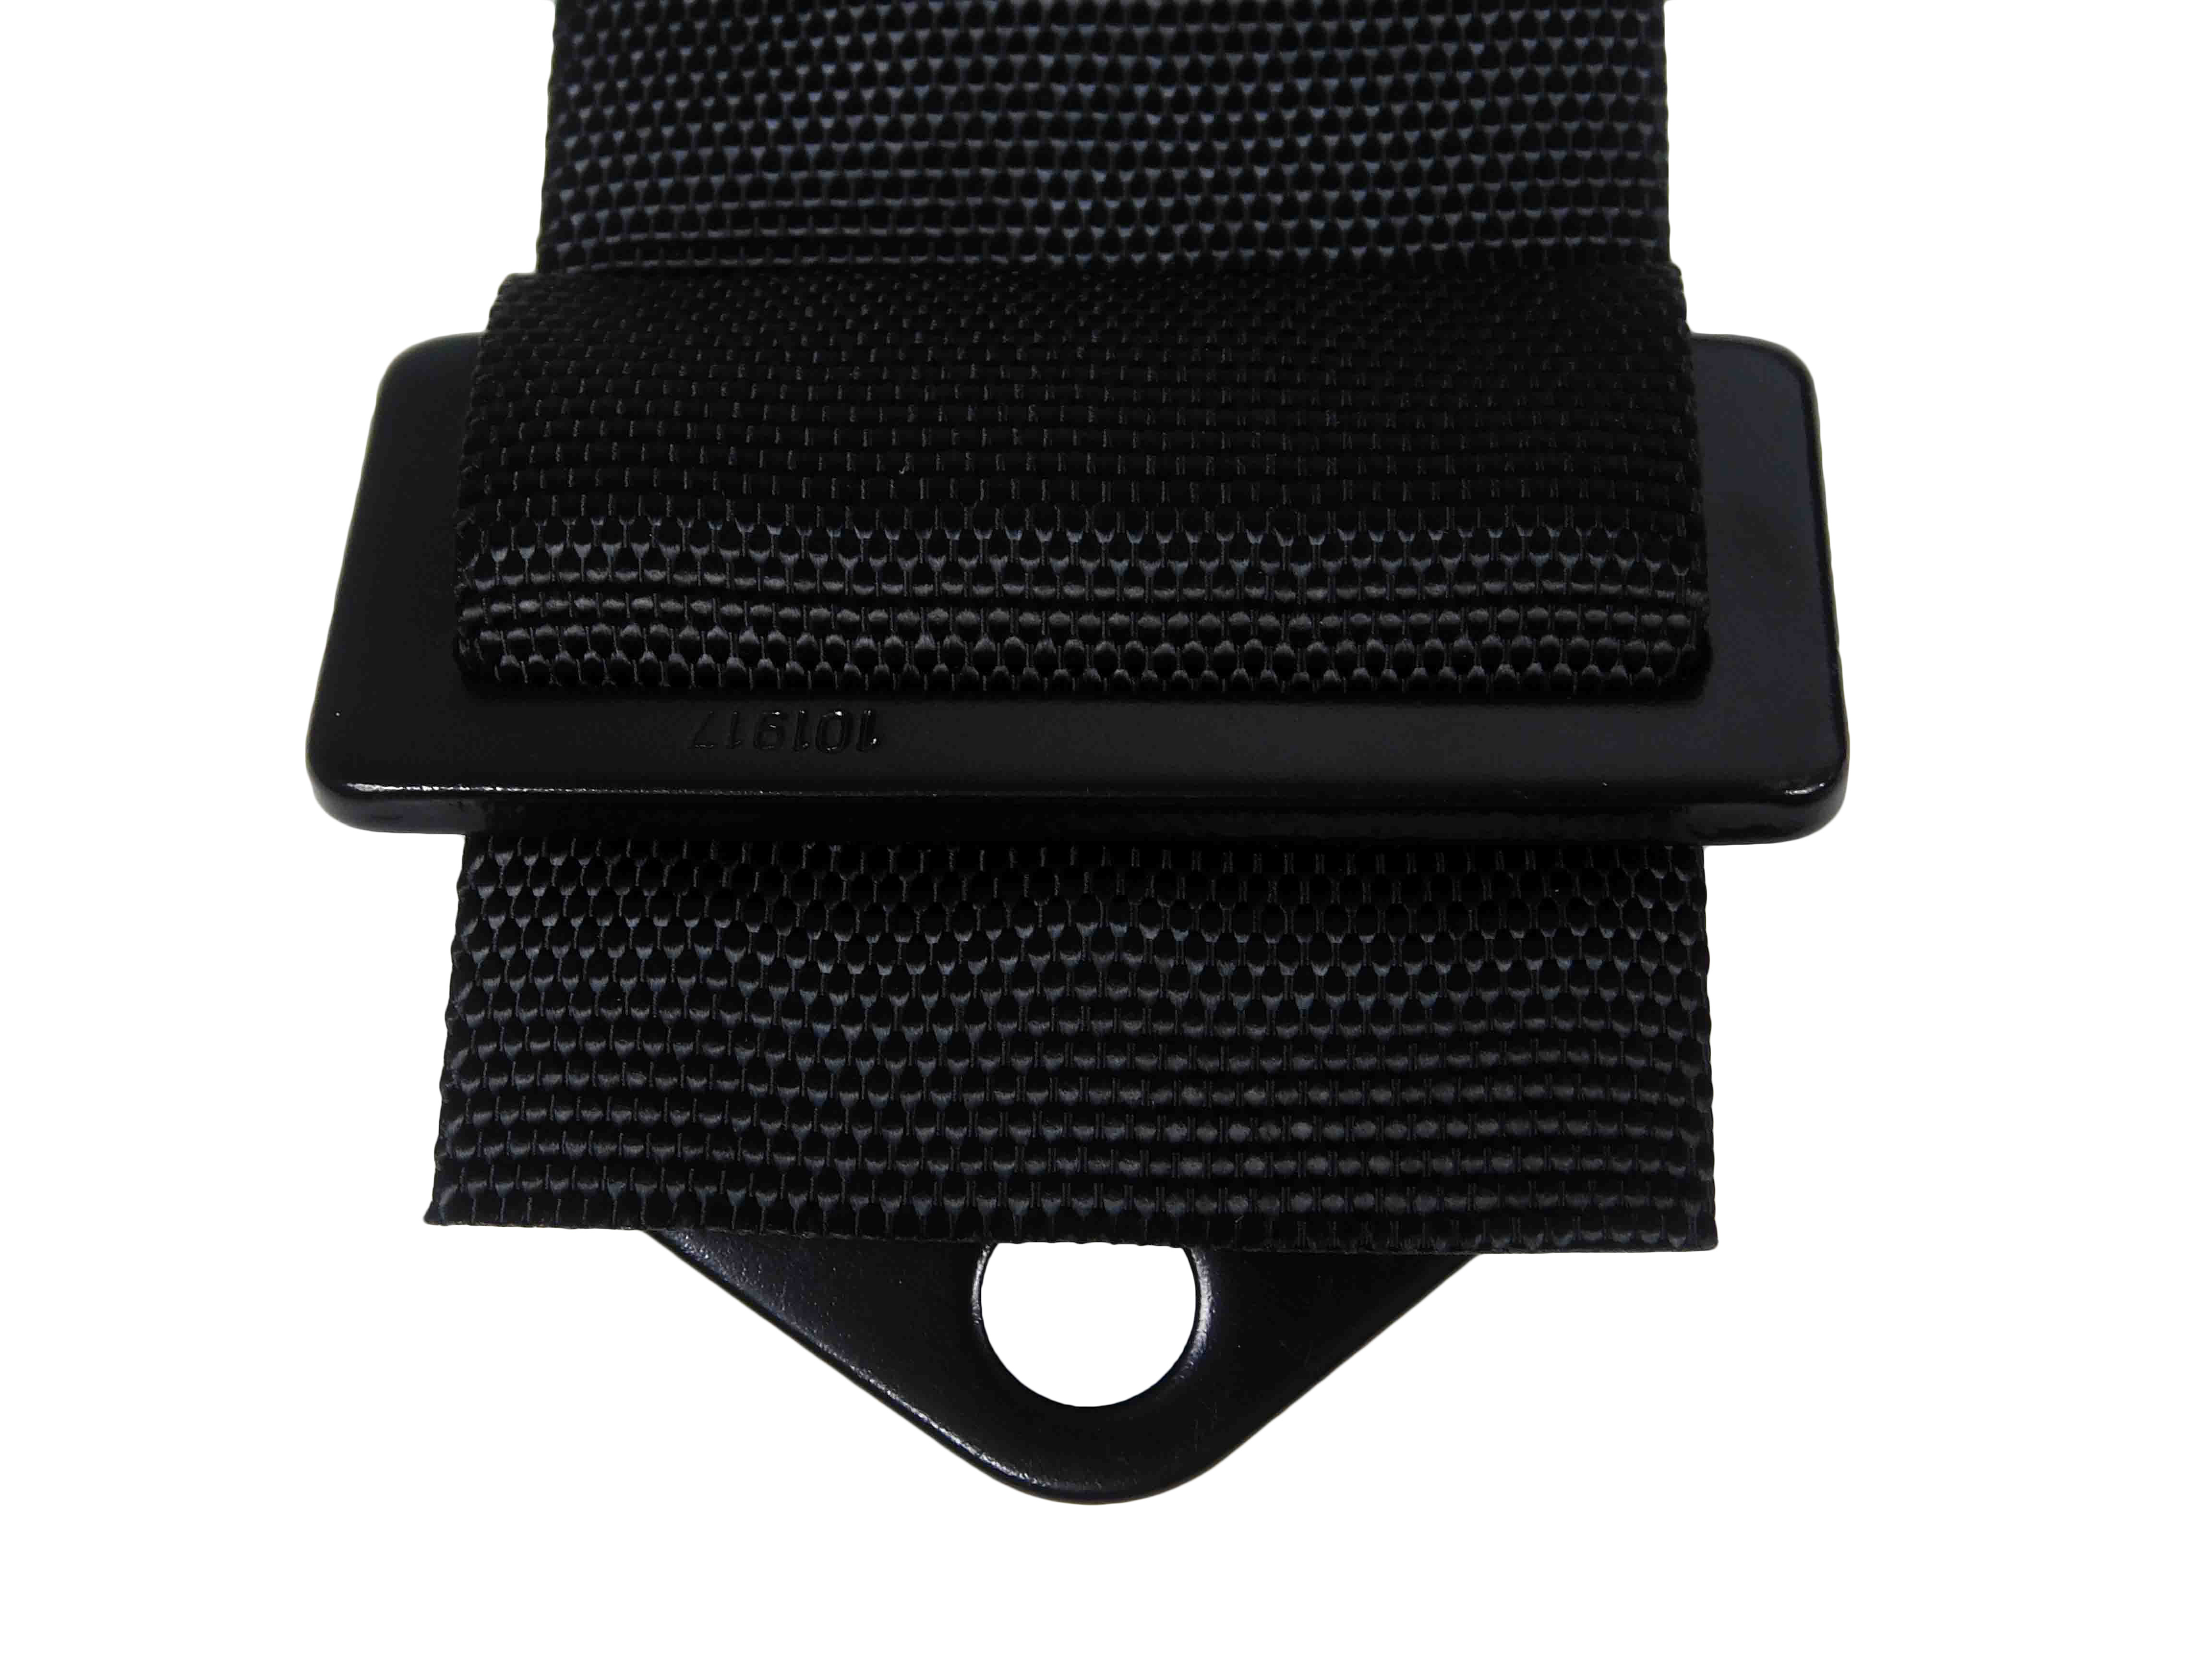 Pro-Armor-A115230-x2-5-Point-3inch-Harness-with-Sewn-in-Pads-Black-2-PACK-image-6